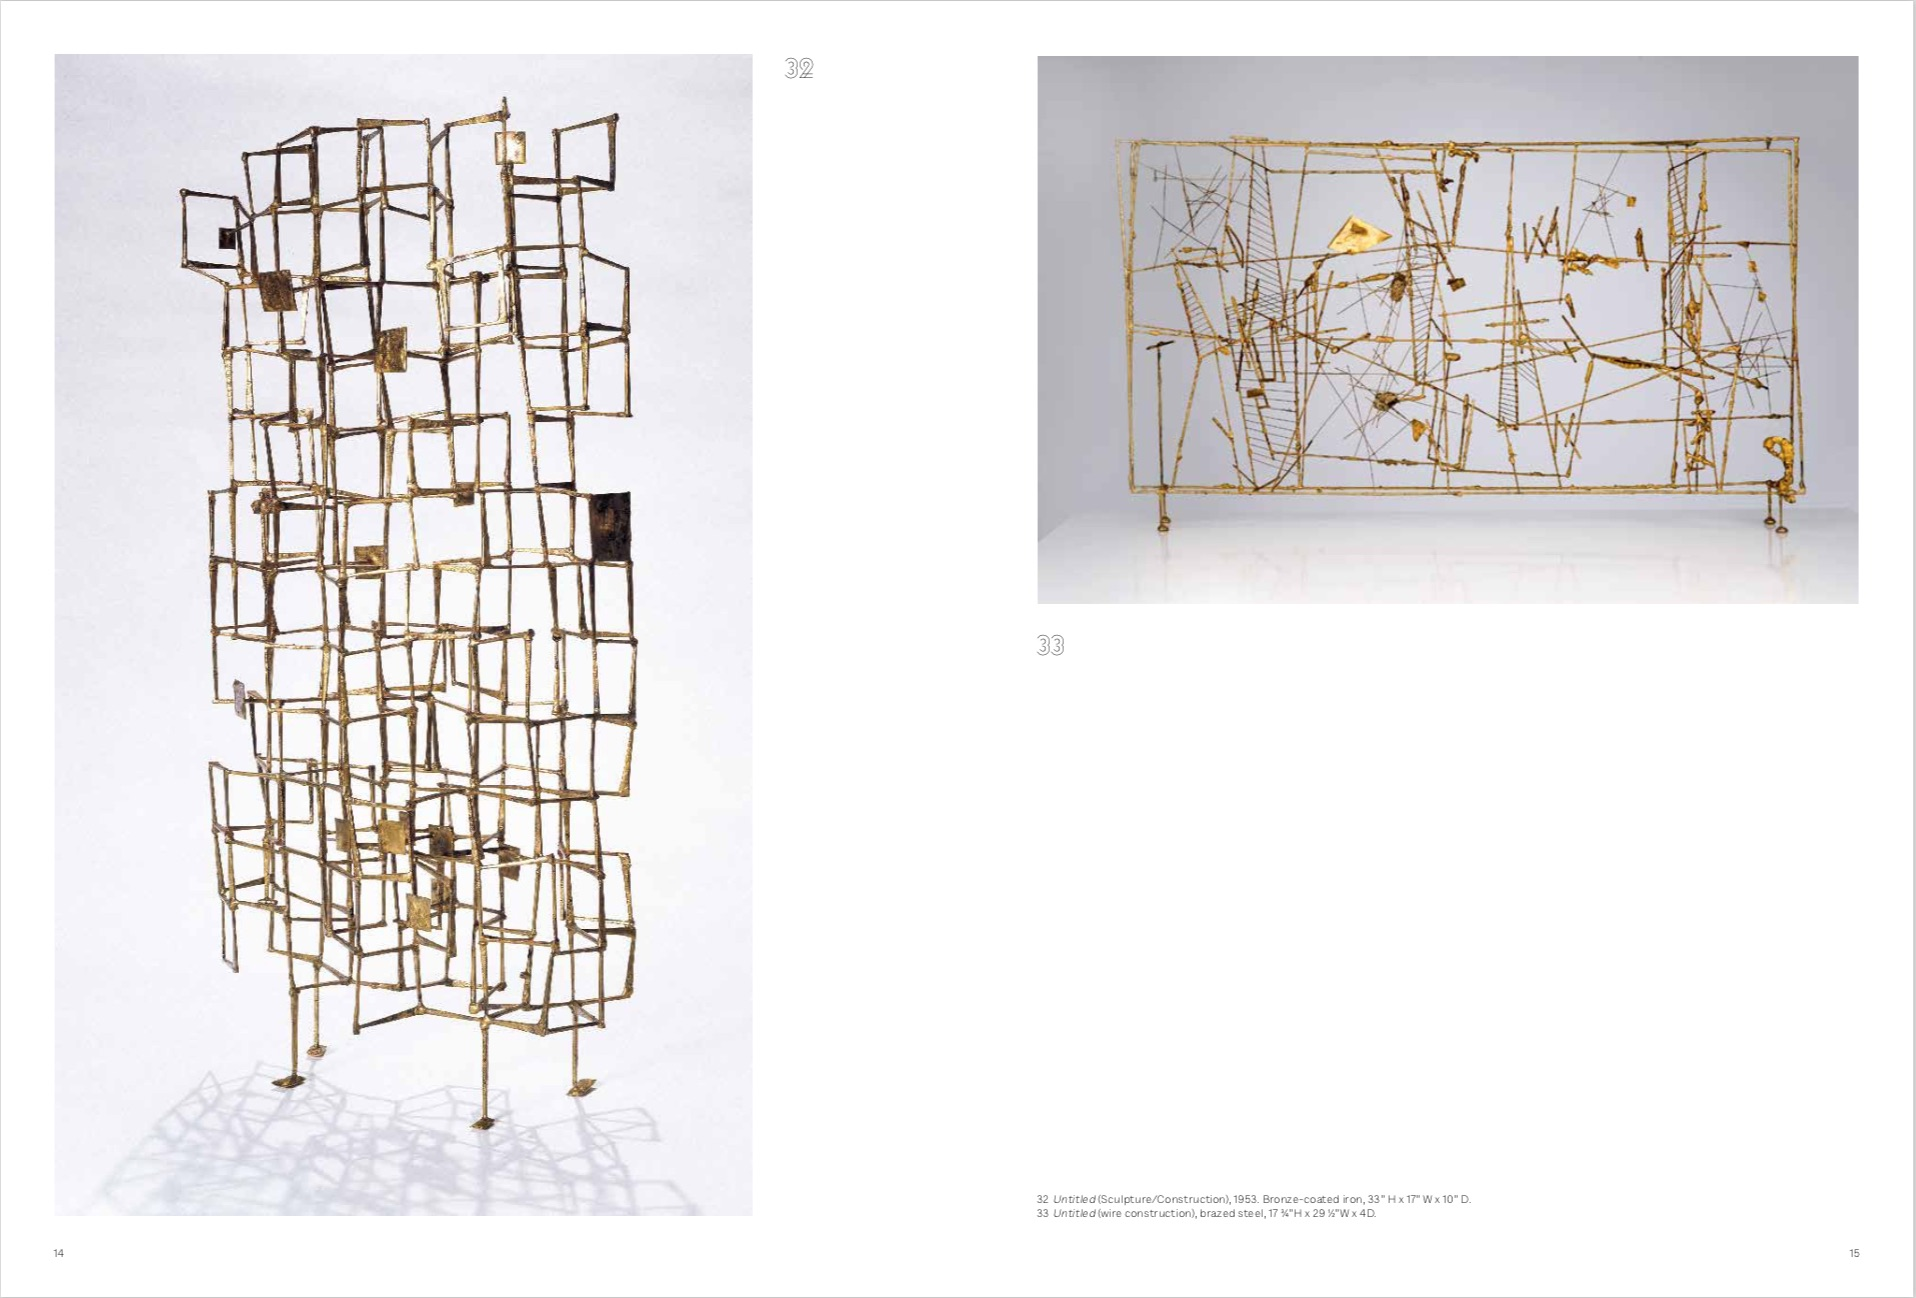 By Beverly H. Twitchell from Bertoia: The Metalworker copyright Phaidon 2019